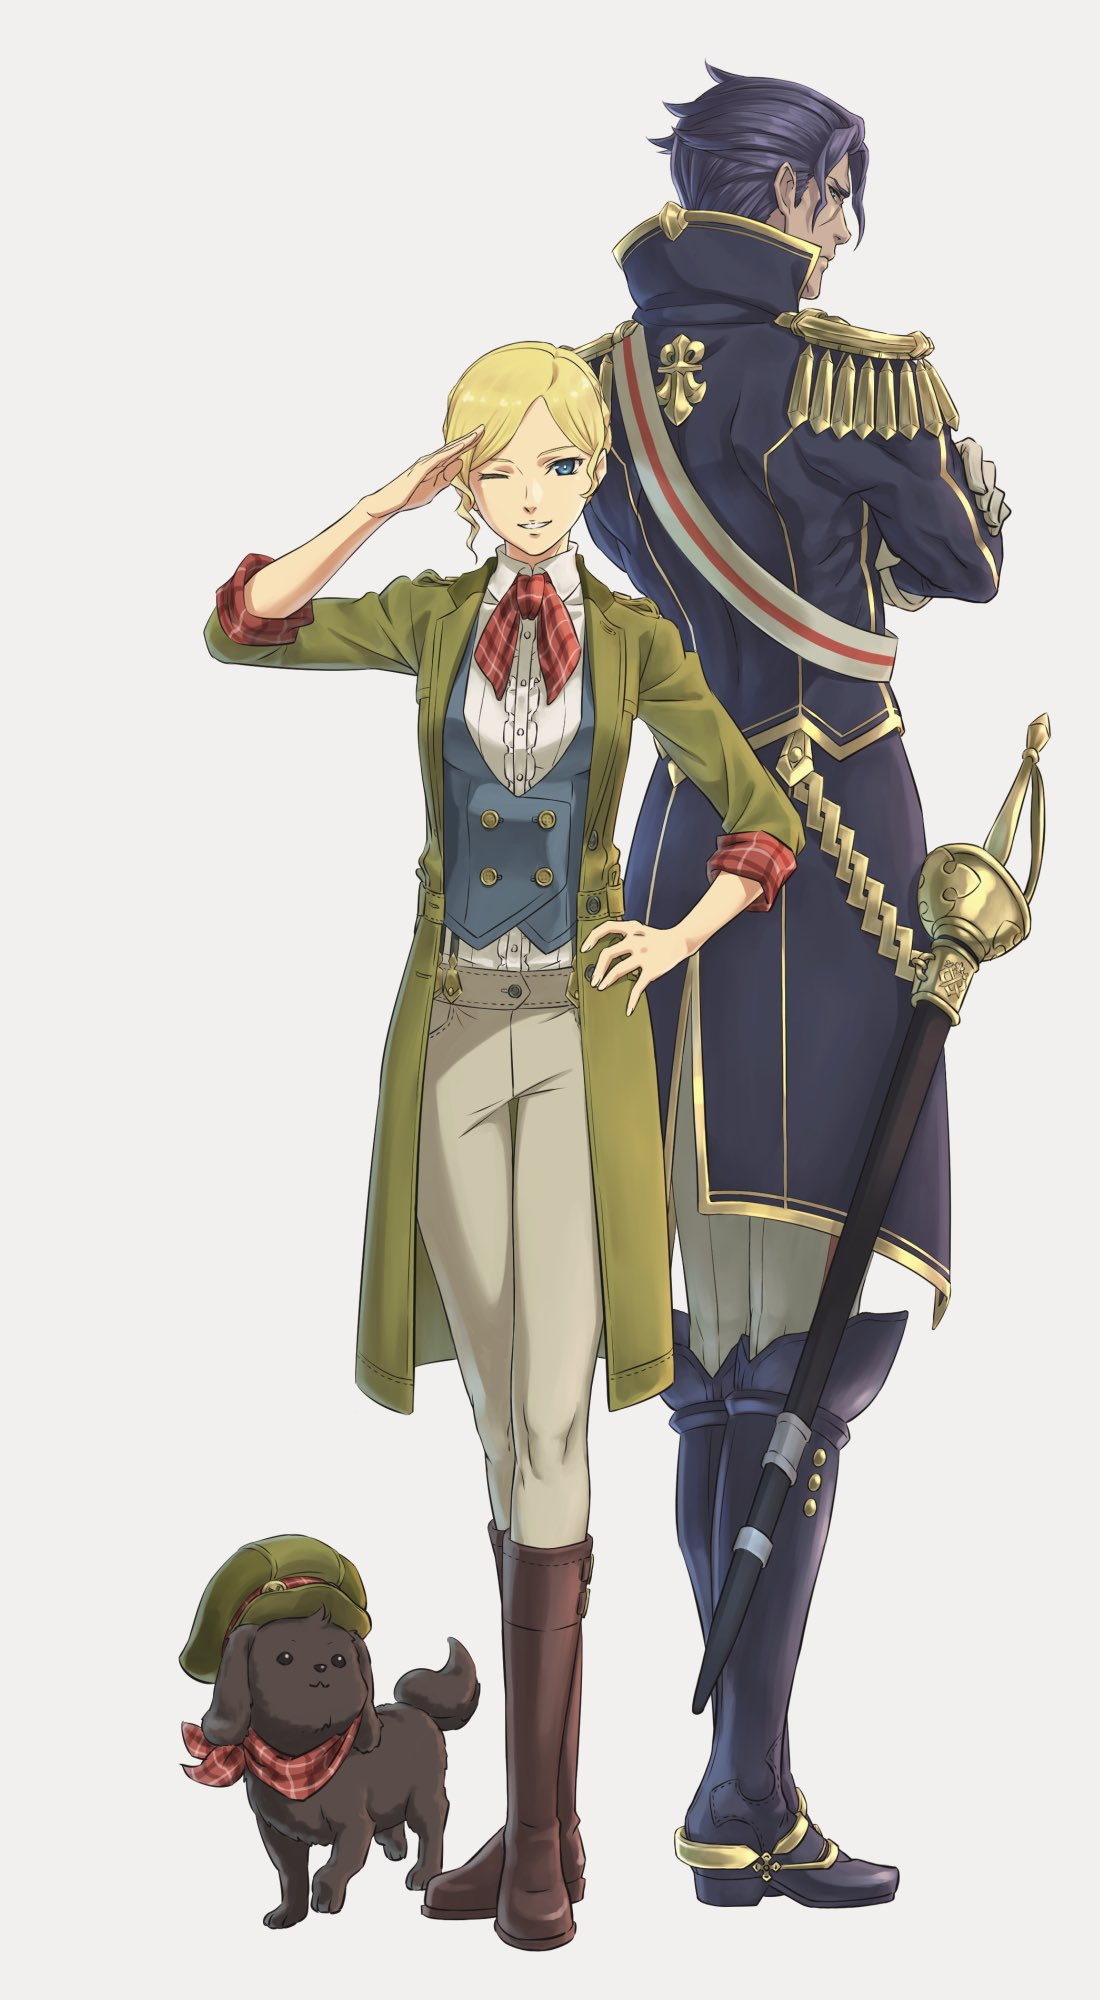 1boy 1girl back-to-back barok_van_zeiks beige_pants blonde_hair blue_eyes blue_jacket boots brown_dog brown_footwear buttons center_frills coat crossed_arms dai_gyakuten_saiban dog double-breasted epaulettes frills full_body gina_lestrade gloves gold_trim green_coat green_headwear gyakuten_saiban hachi_kou highres jacket looking_at_viewer looking_back one_eye_closed pants puppy purple_footwear purple_hair purple_jacket red_neckwear saber_(weapon) sheath sheathed shirt short_hair simple_background suspenders sword weapon white_background white_gloves white_pants white_shirt